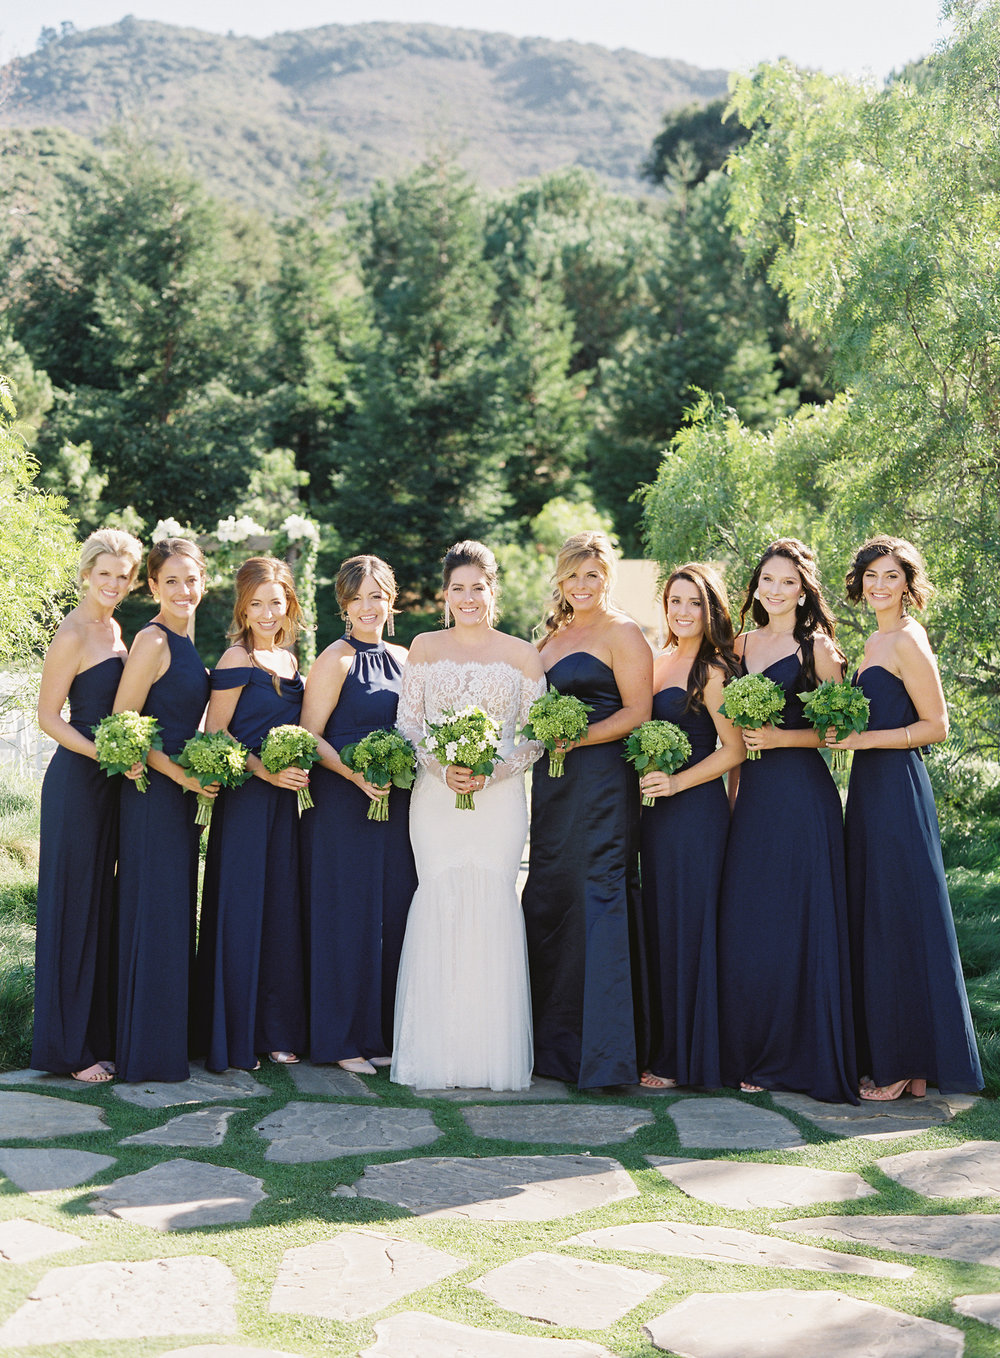 Meghan Mehan Photography - Carmel Valley Ranch Wedding 059.jpg